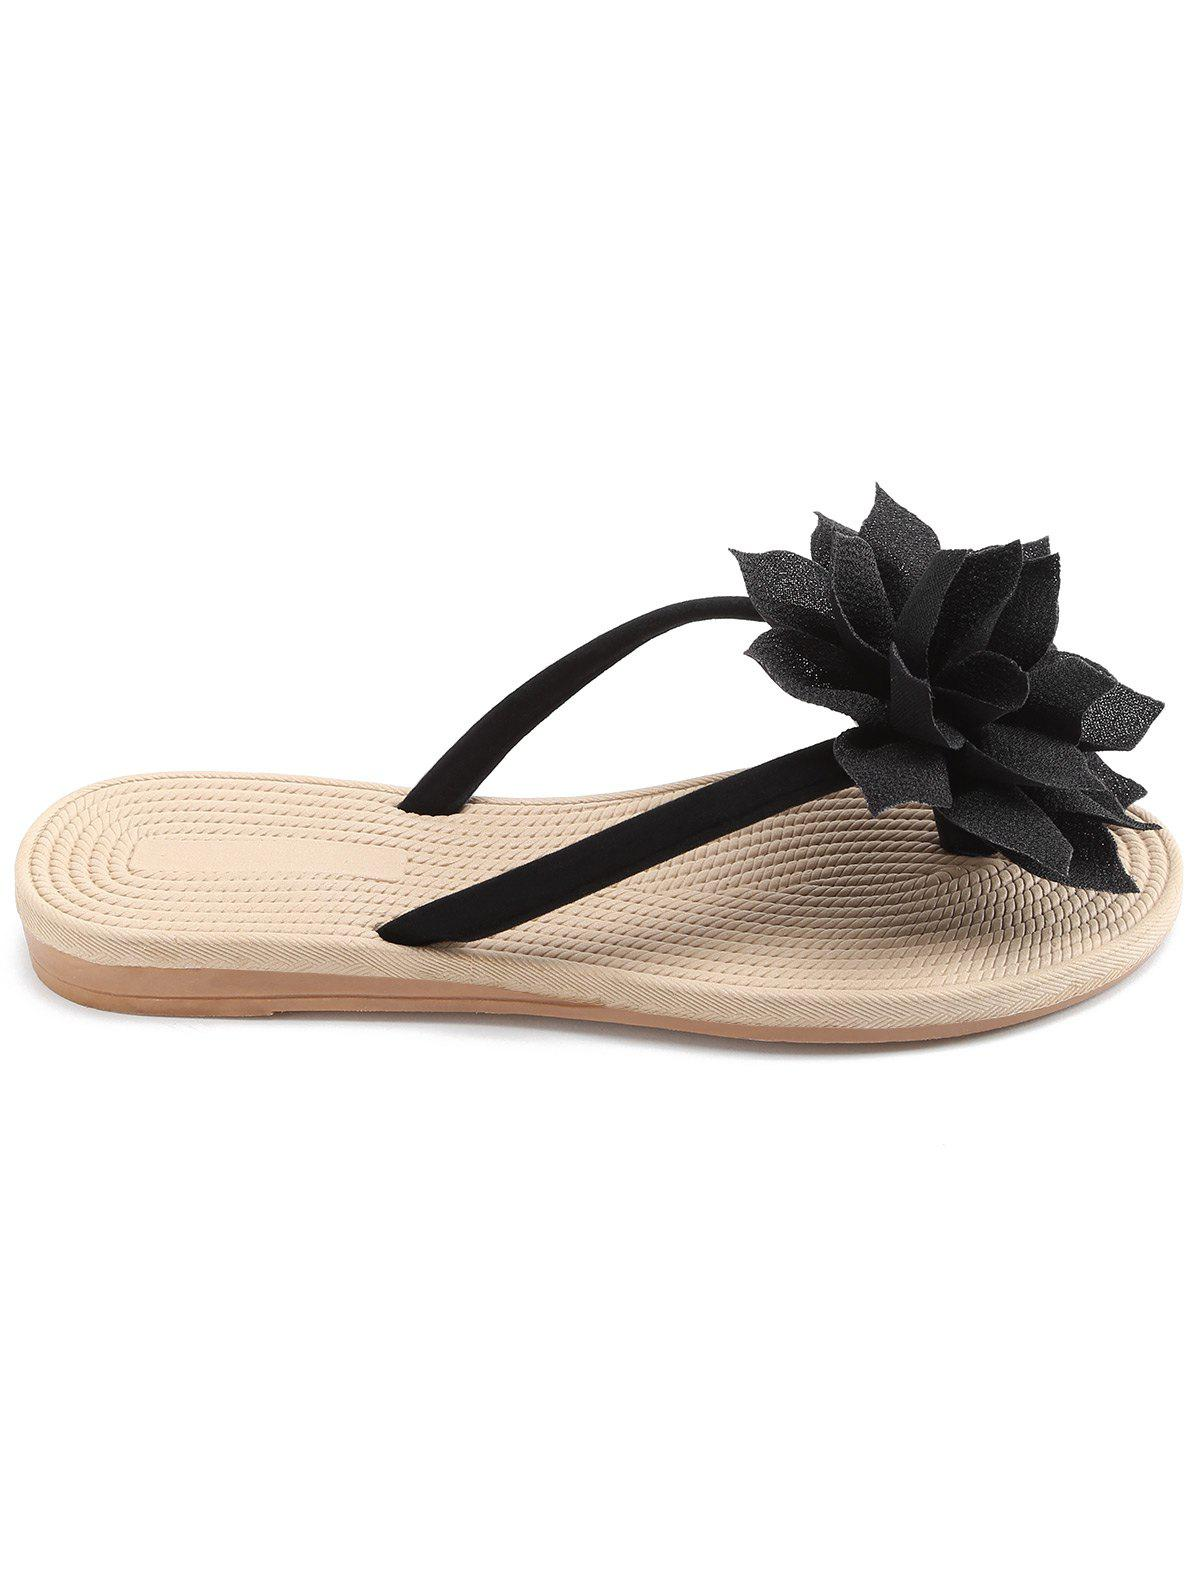 Unique Casual Flower Flip Flops for Beach